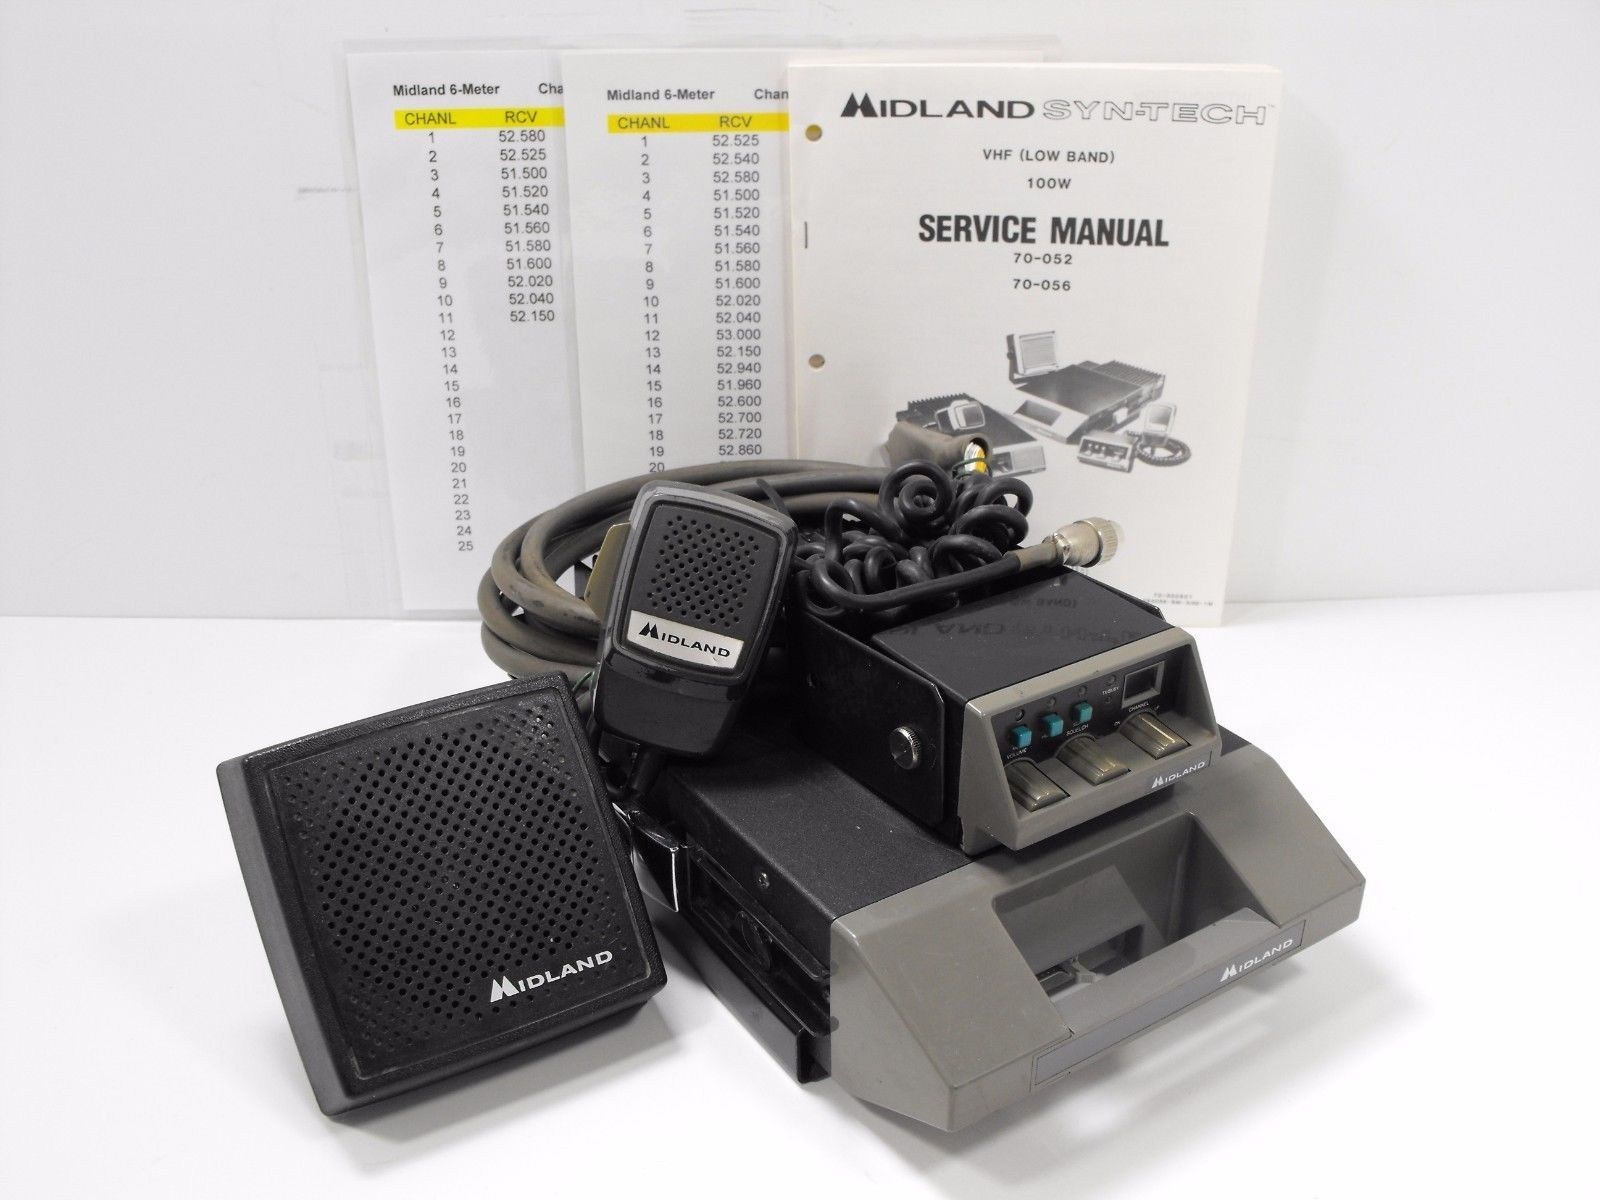 Midland 70-056C 6 Meter Mobile Transceiver w/ Remote Head